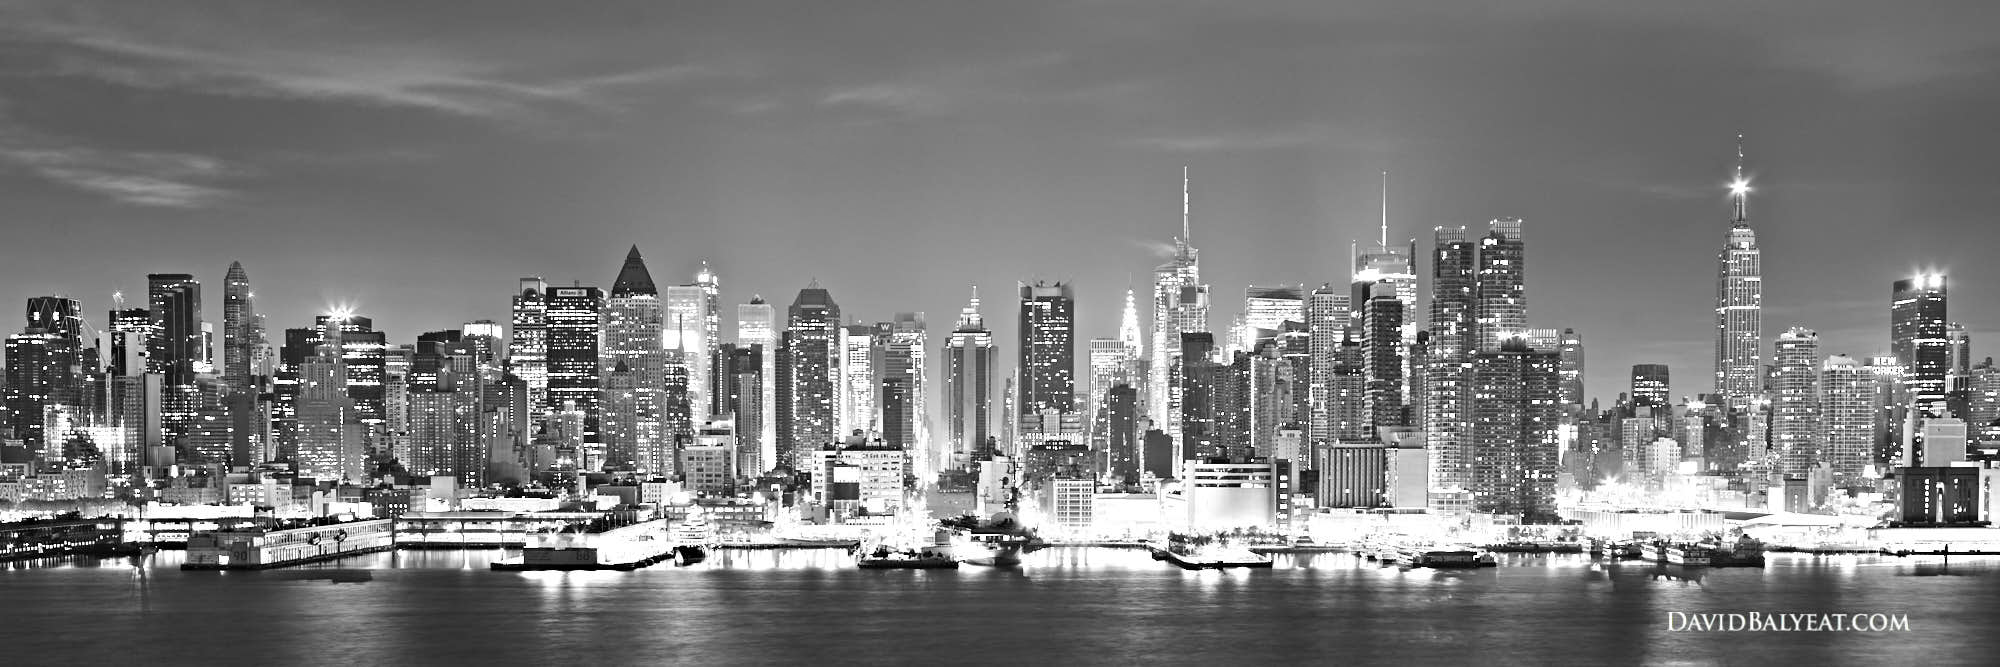 city skyline black and white - photo #44